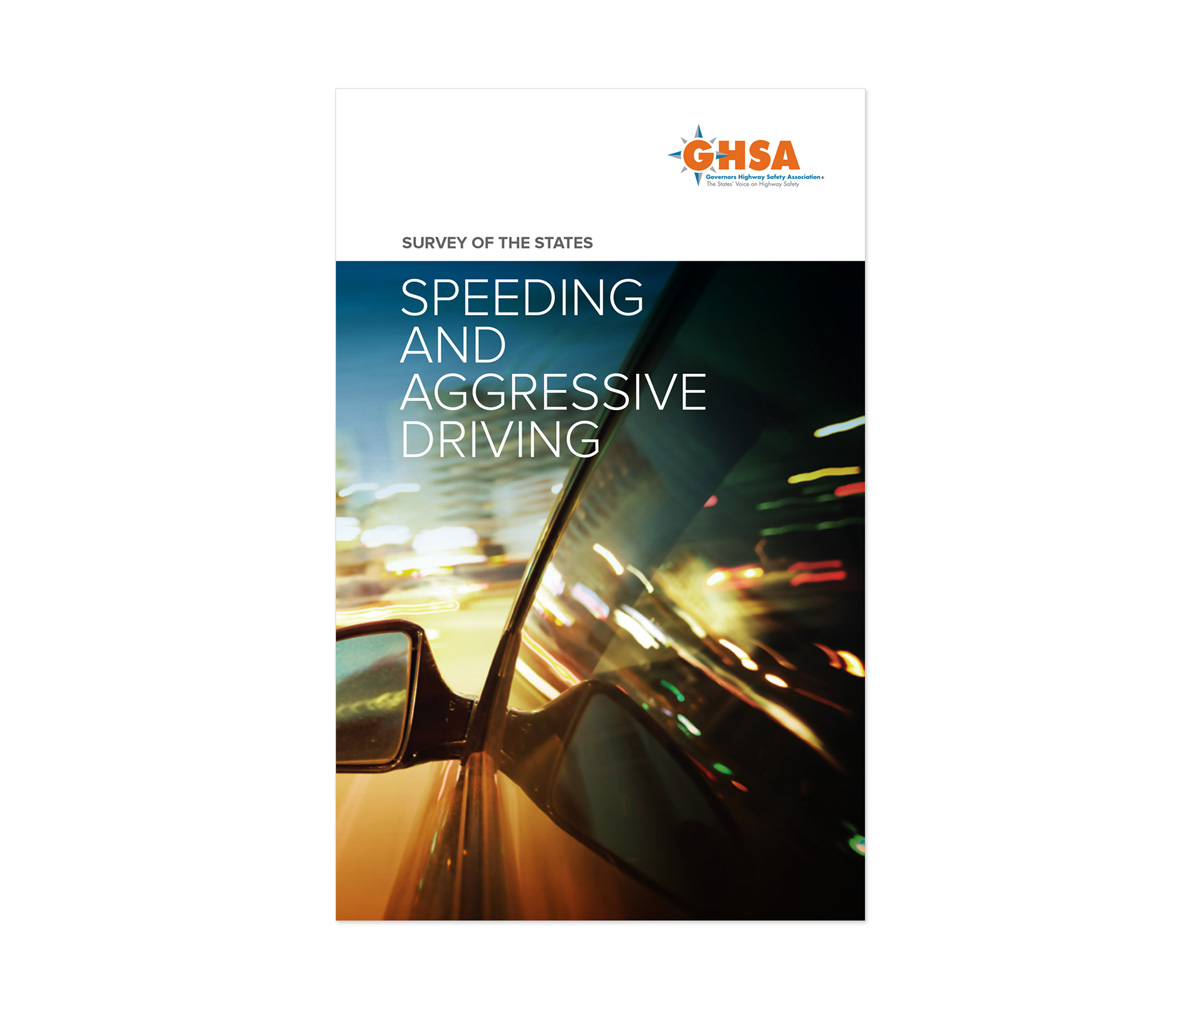 an introduction to the issue of aggressive driving Personal characteristics of aggressive drivers in the perception of drivers and road traffic inspectors aggressive driving, being the most dangerous behavior on the.